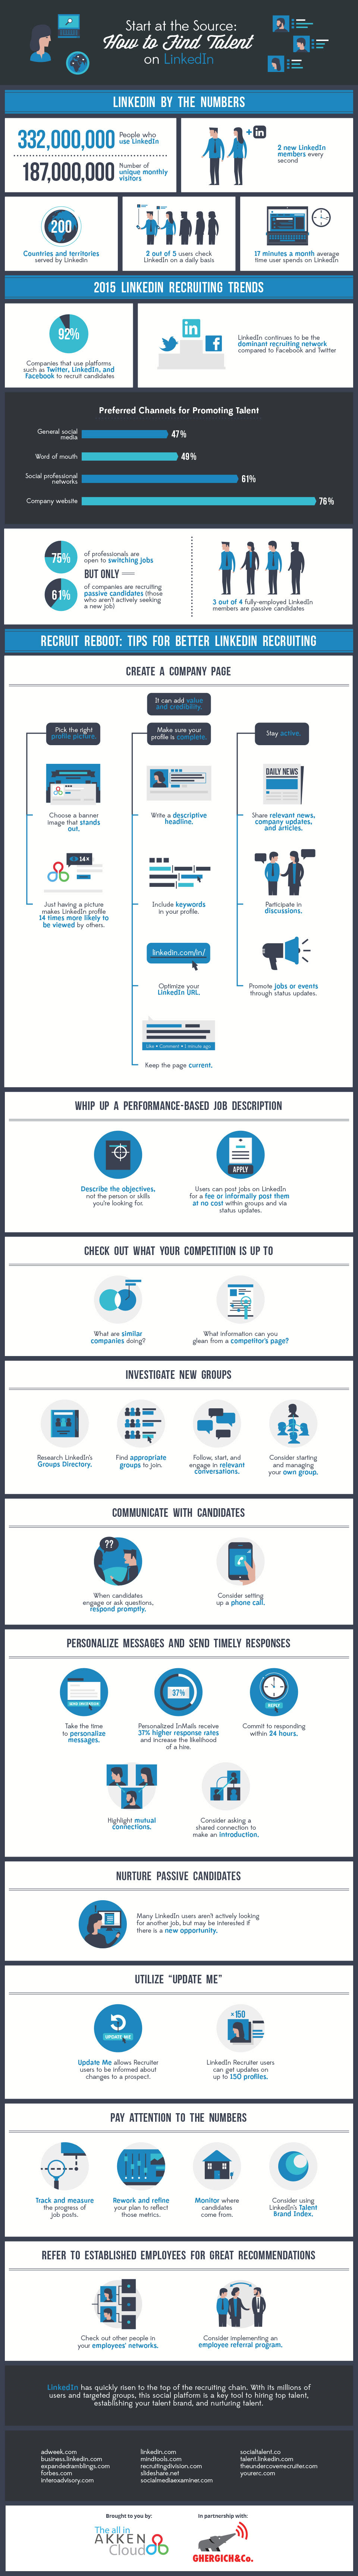 How to Find Talent on LinkedIn - infographic